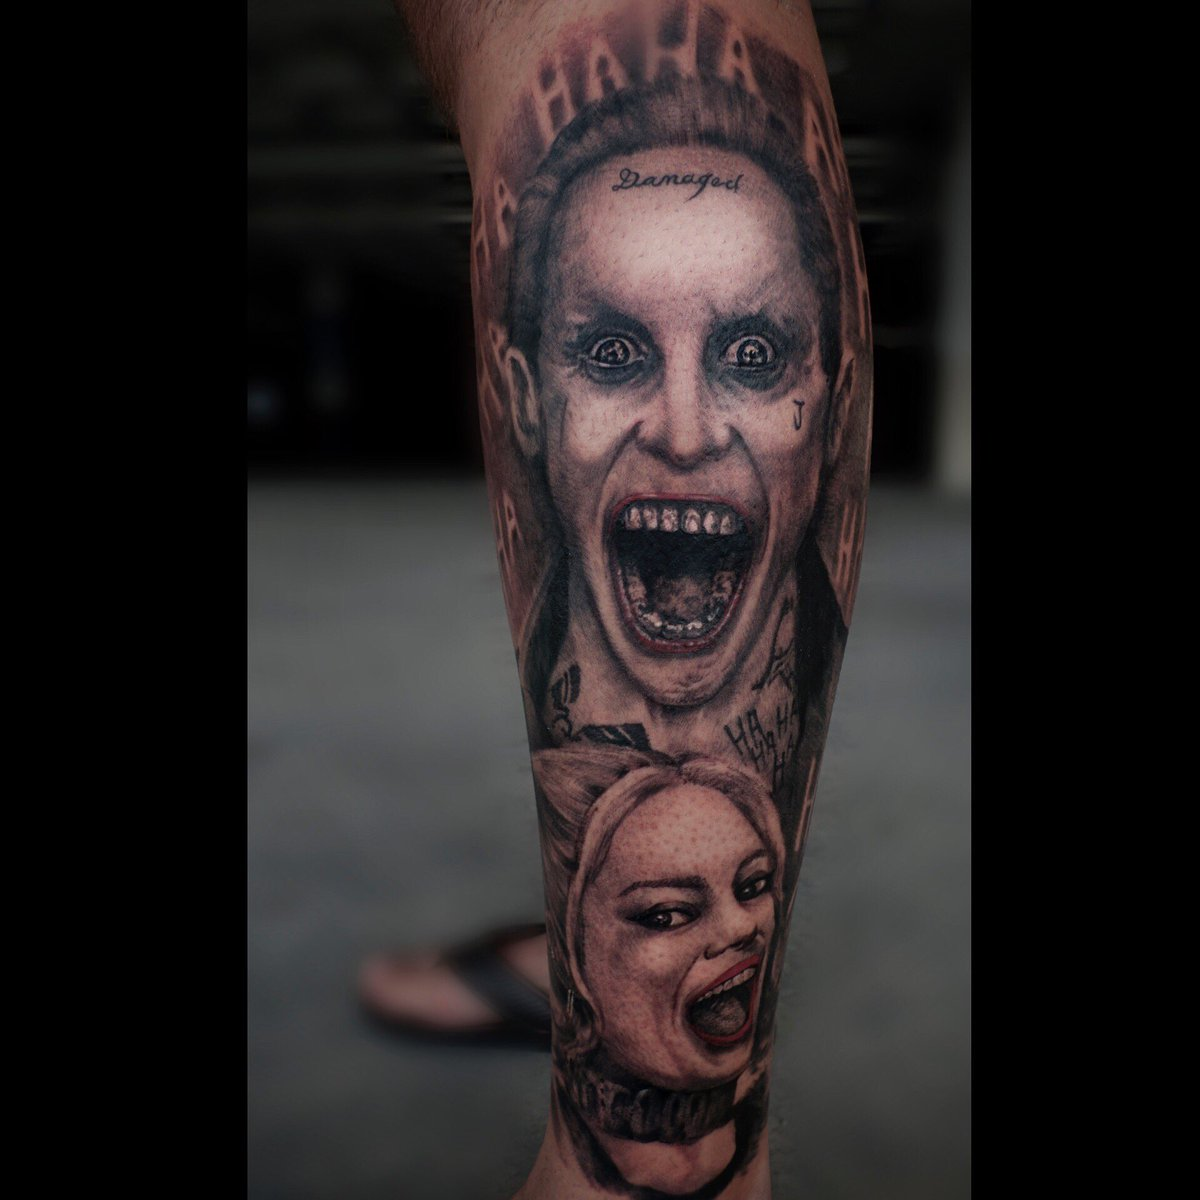 L Y Ling On Twitter Daddy S Lil Monster Leg Sleeve In Progress Tattoo Suicidesquad Suicidesquadtattoo Jokertattoo Harleyquinn